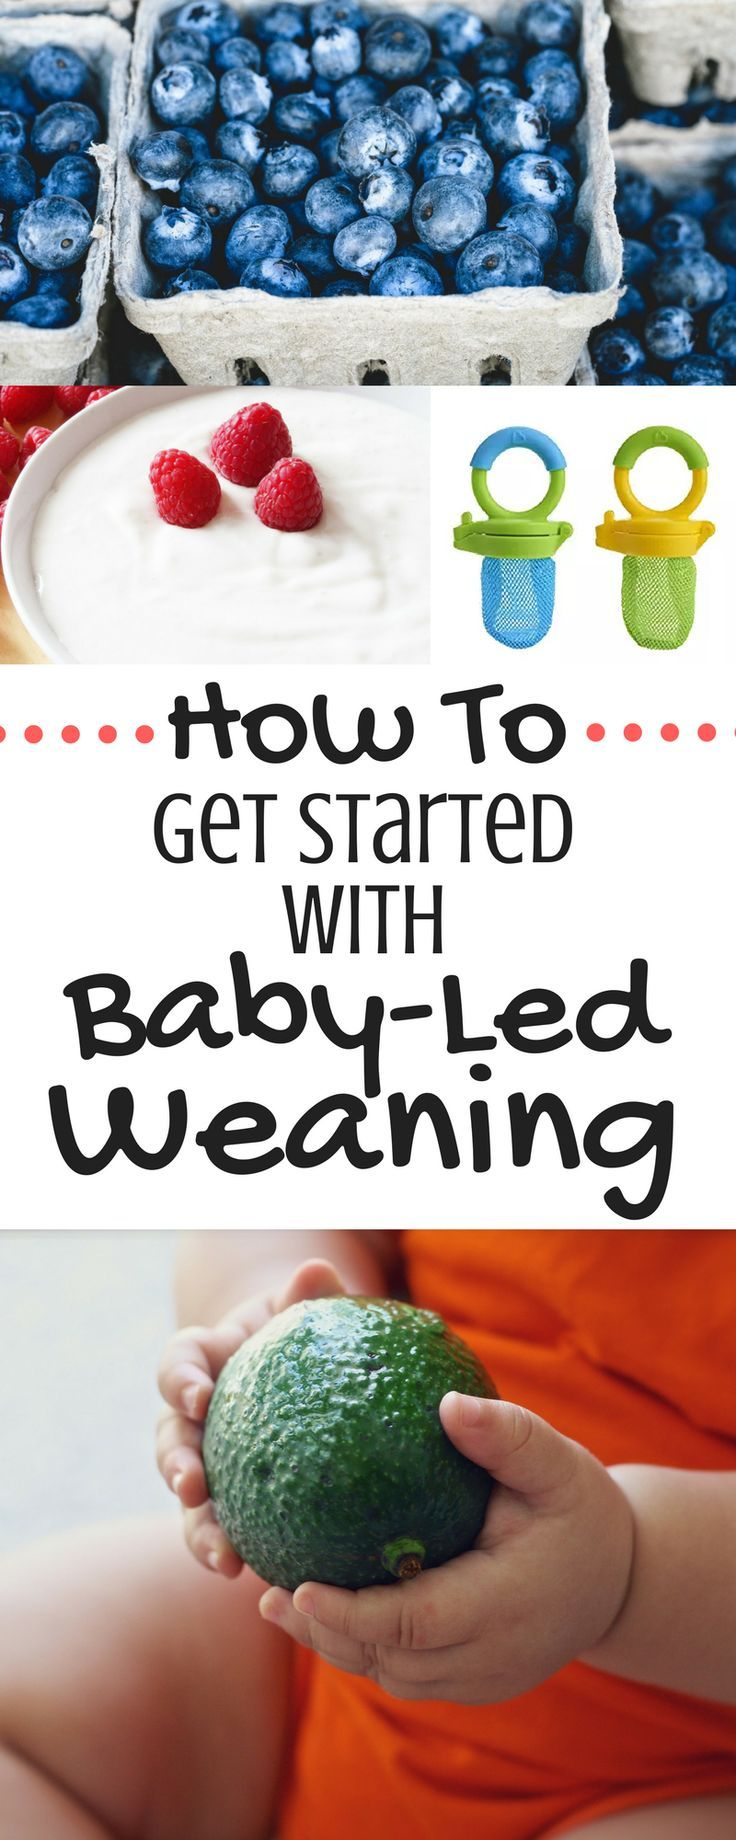 Thinking of getting started with baby-led weaning? This post is a must-read! Tons of tips and info for how to get started. All the baby-led weaning basics in one post!